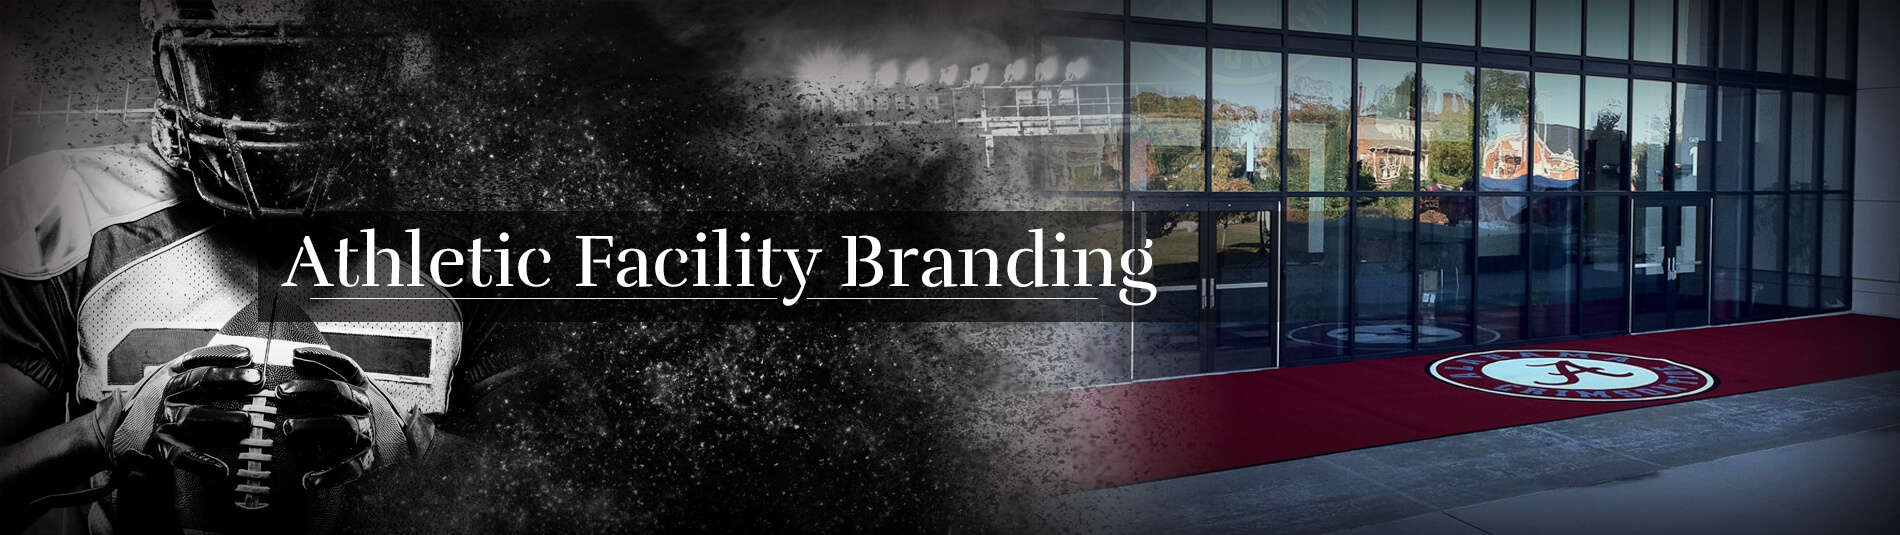 1 Athletic Facility Branding banner